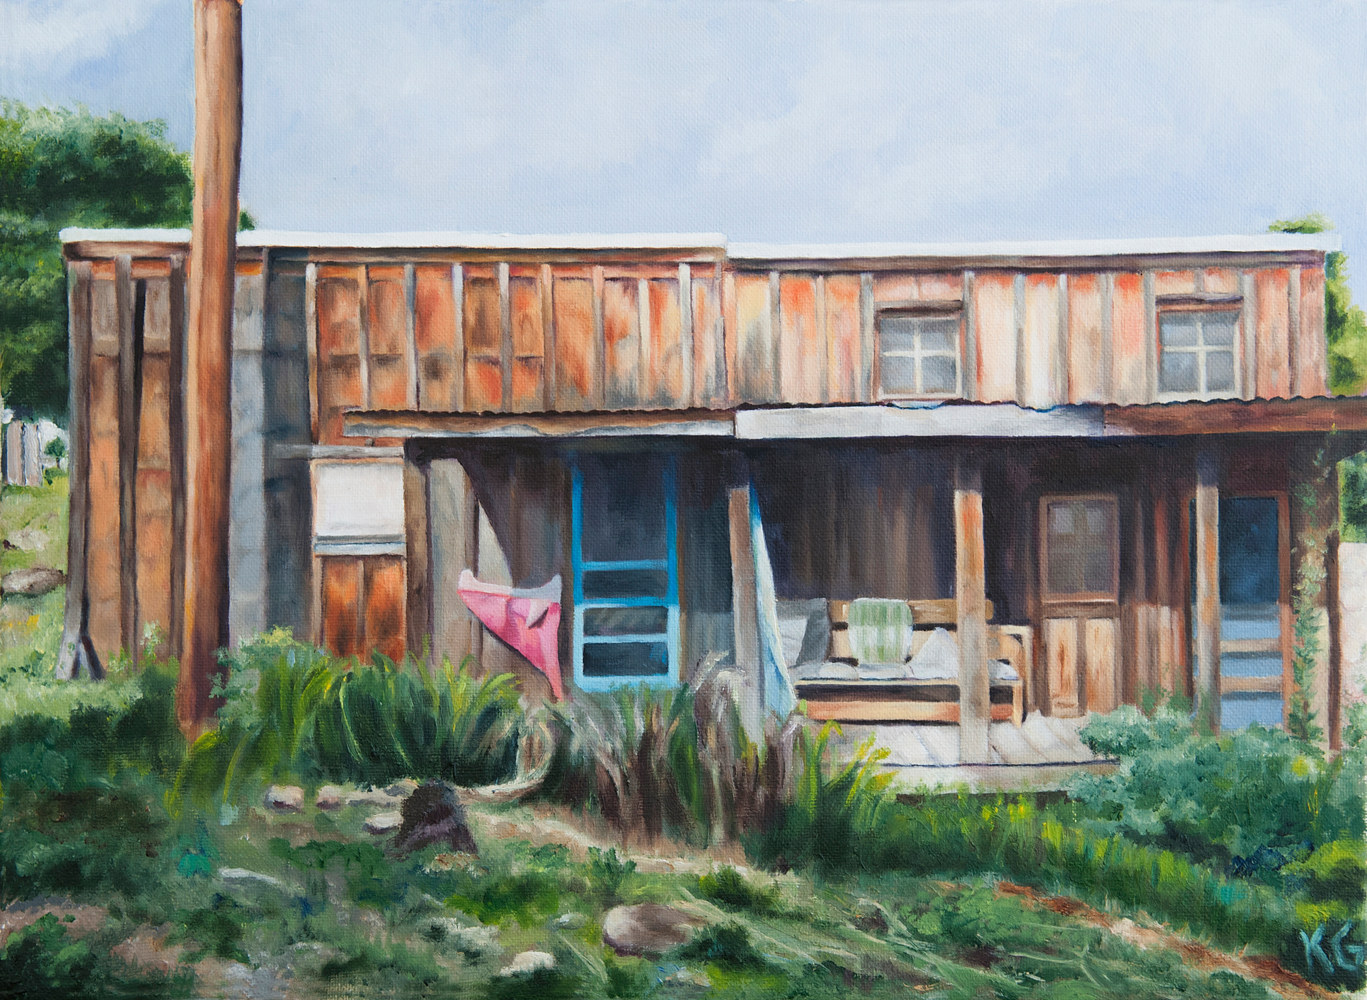 Oil painting Remembering Espanola by Kathleen Gross